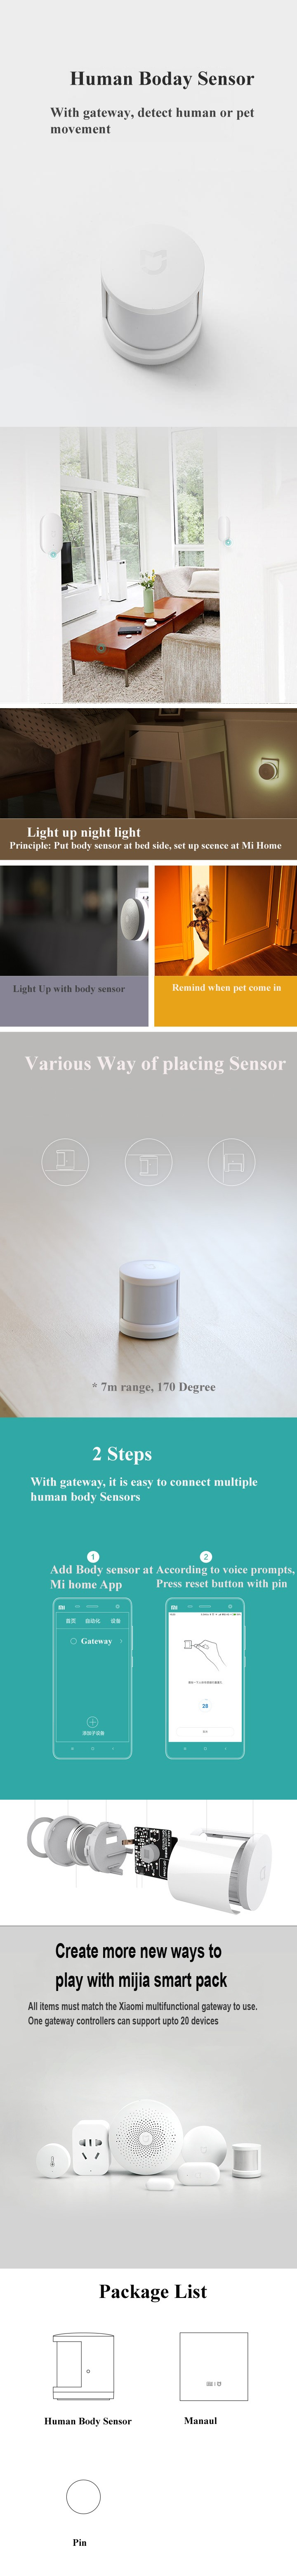 Xiaomi Mijia Smart Home Smart Human Body Sensor